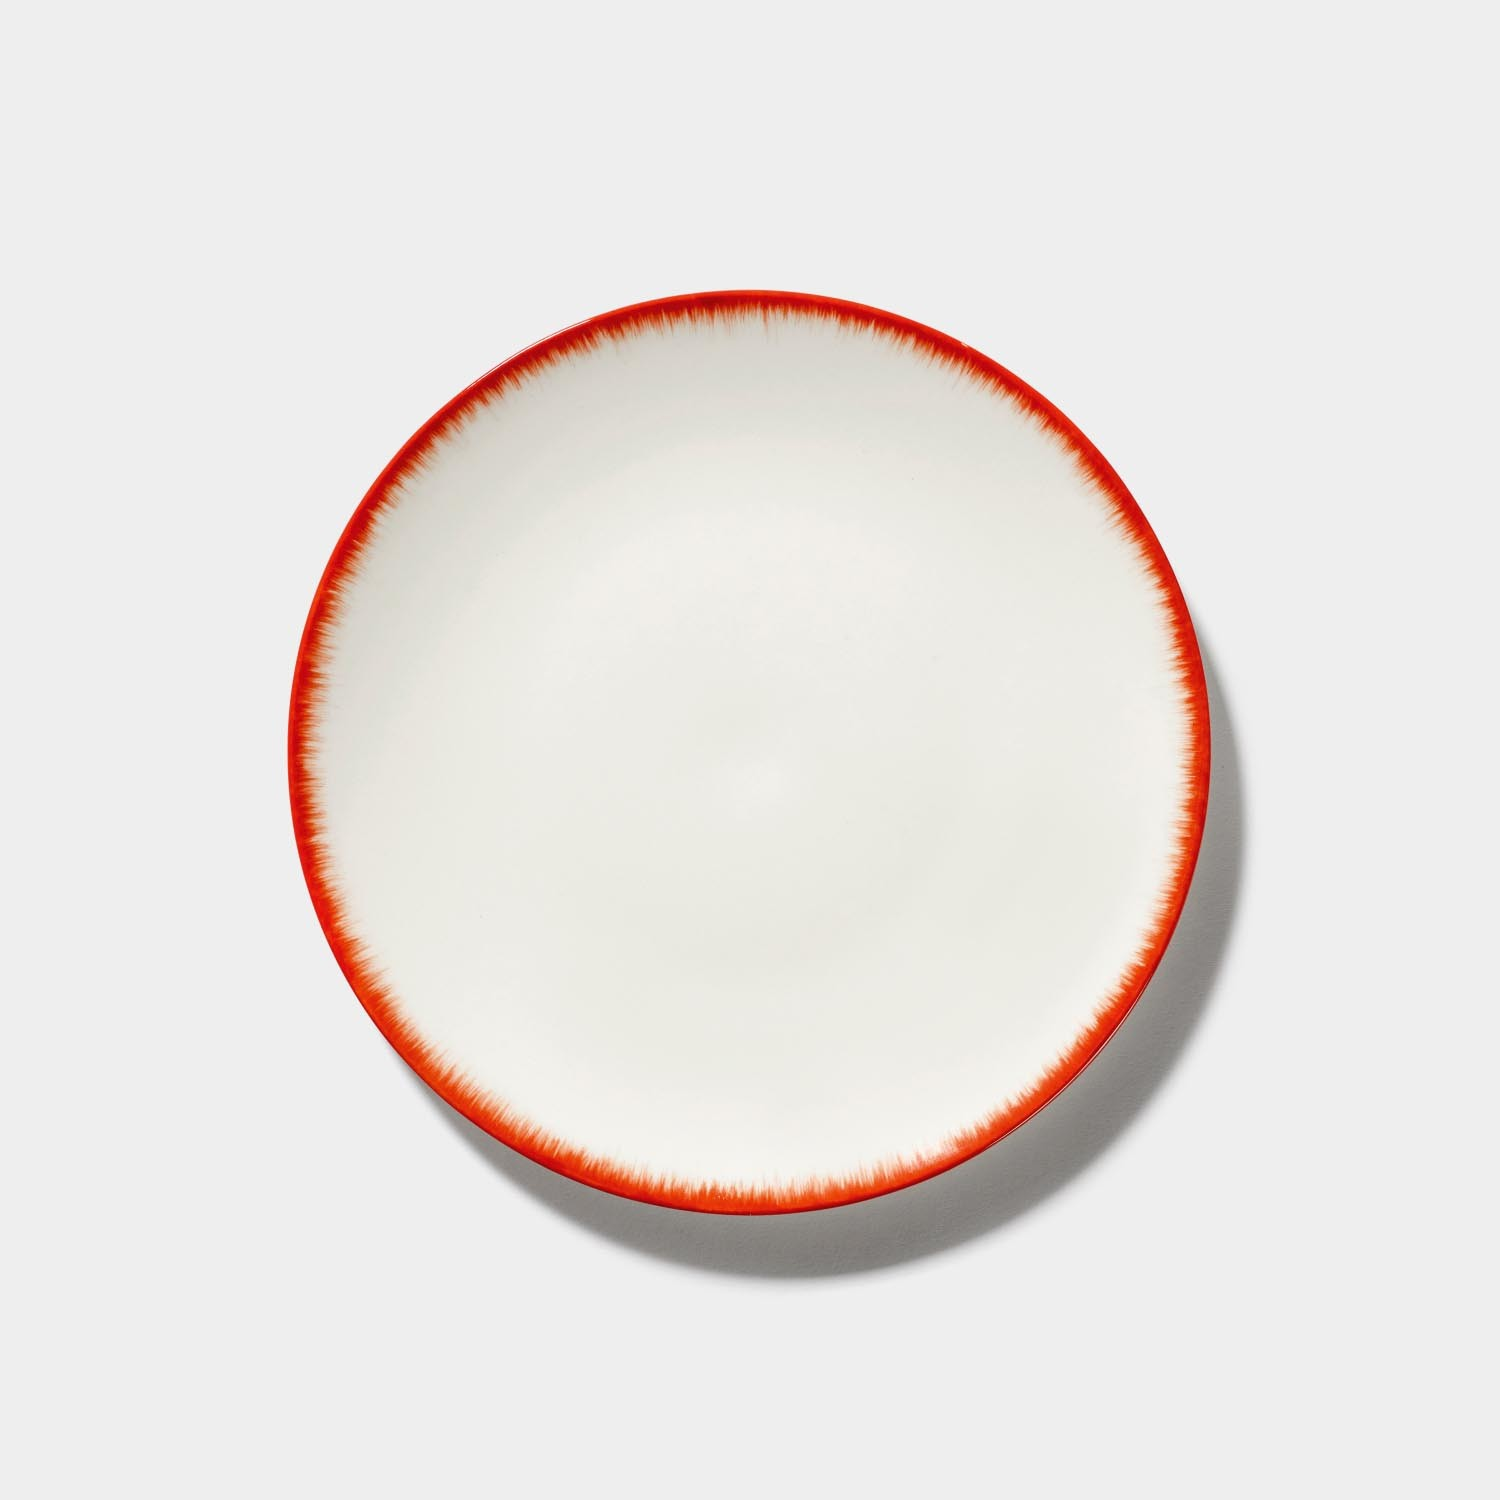 Dé Plate, Off-White/Red Var 2